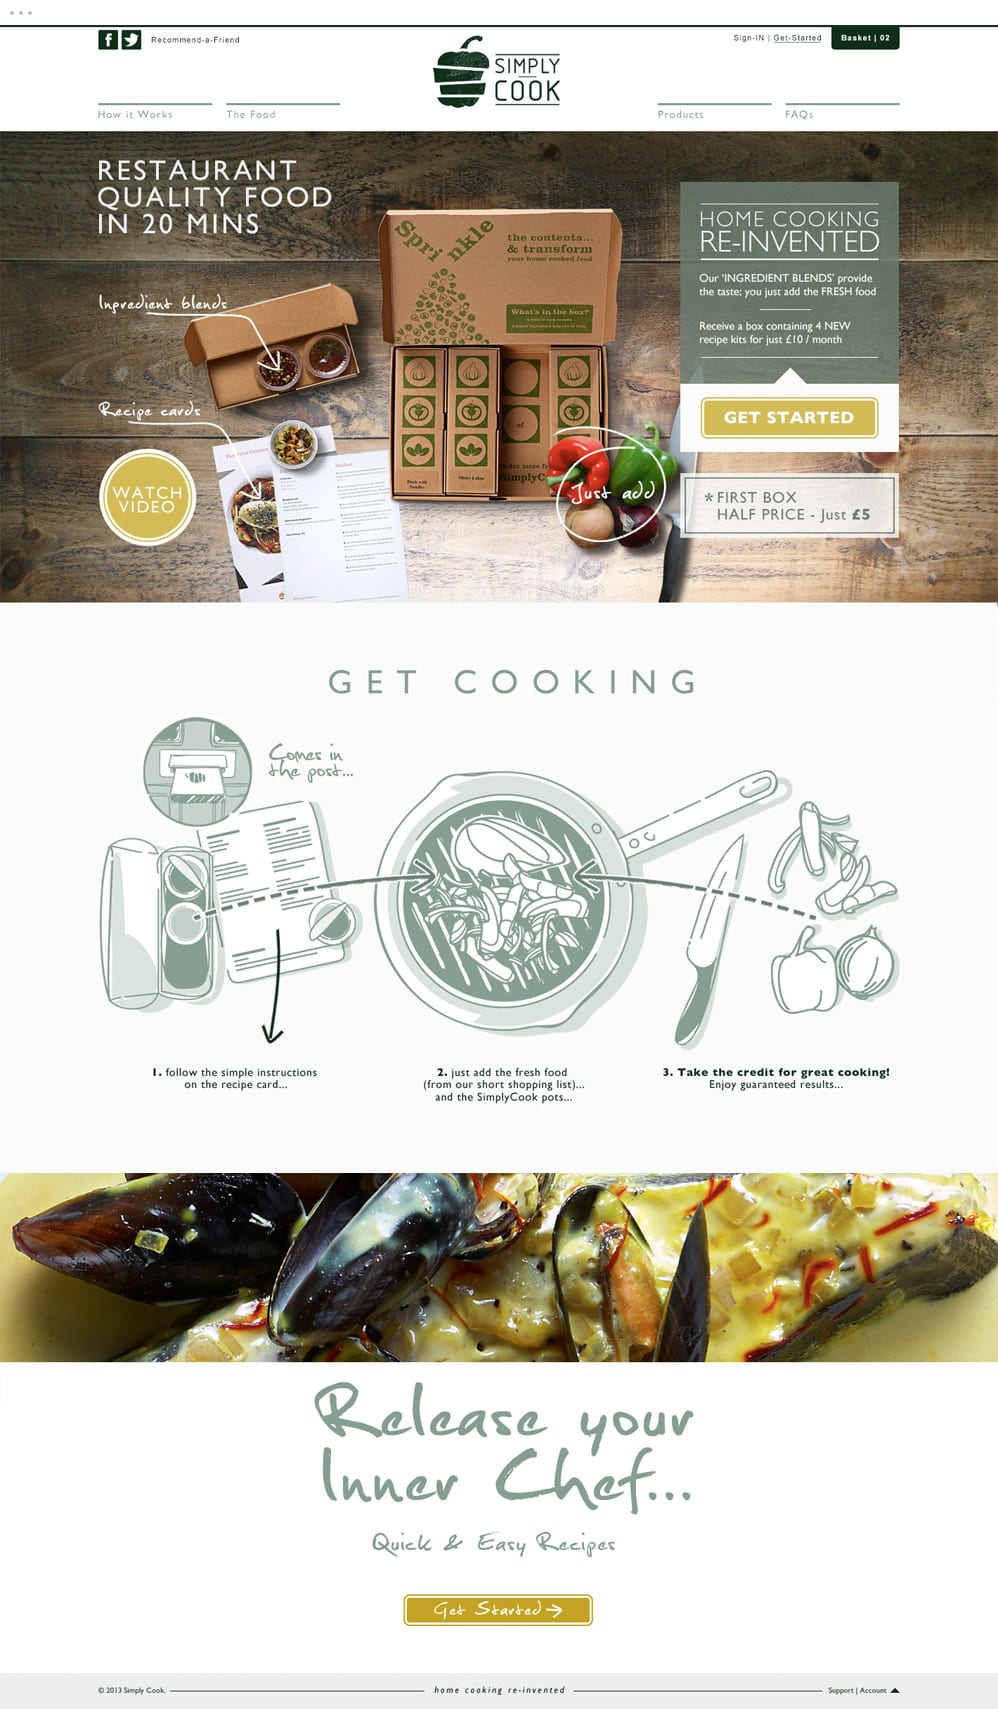 Mike-Garland-Simply-Cook-Website-Home-London Freelance Web Designer